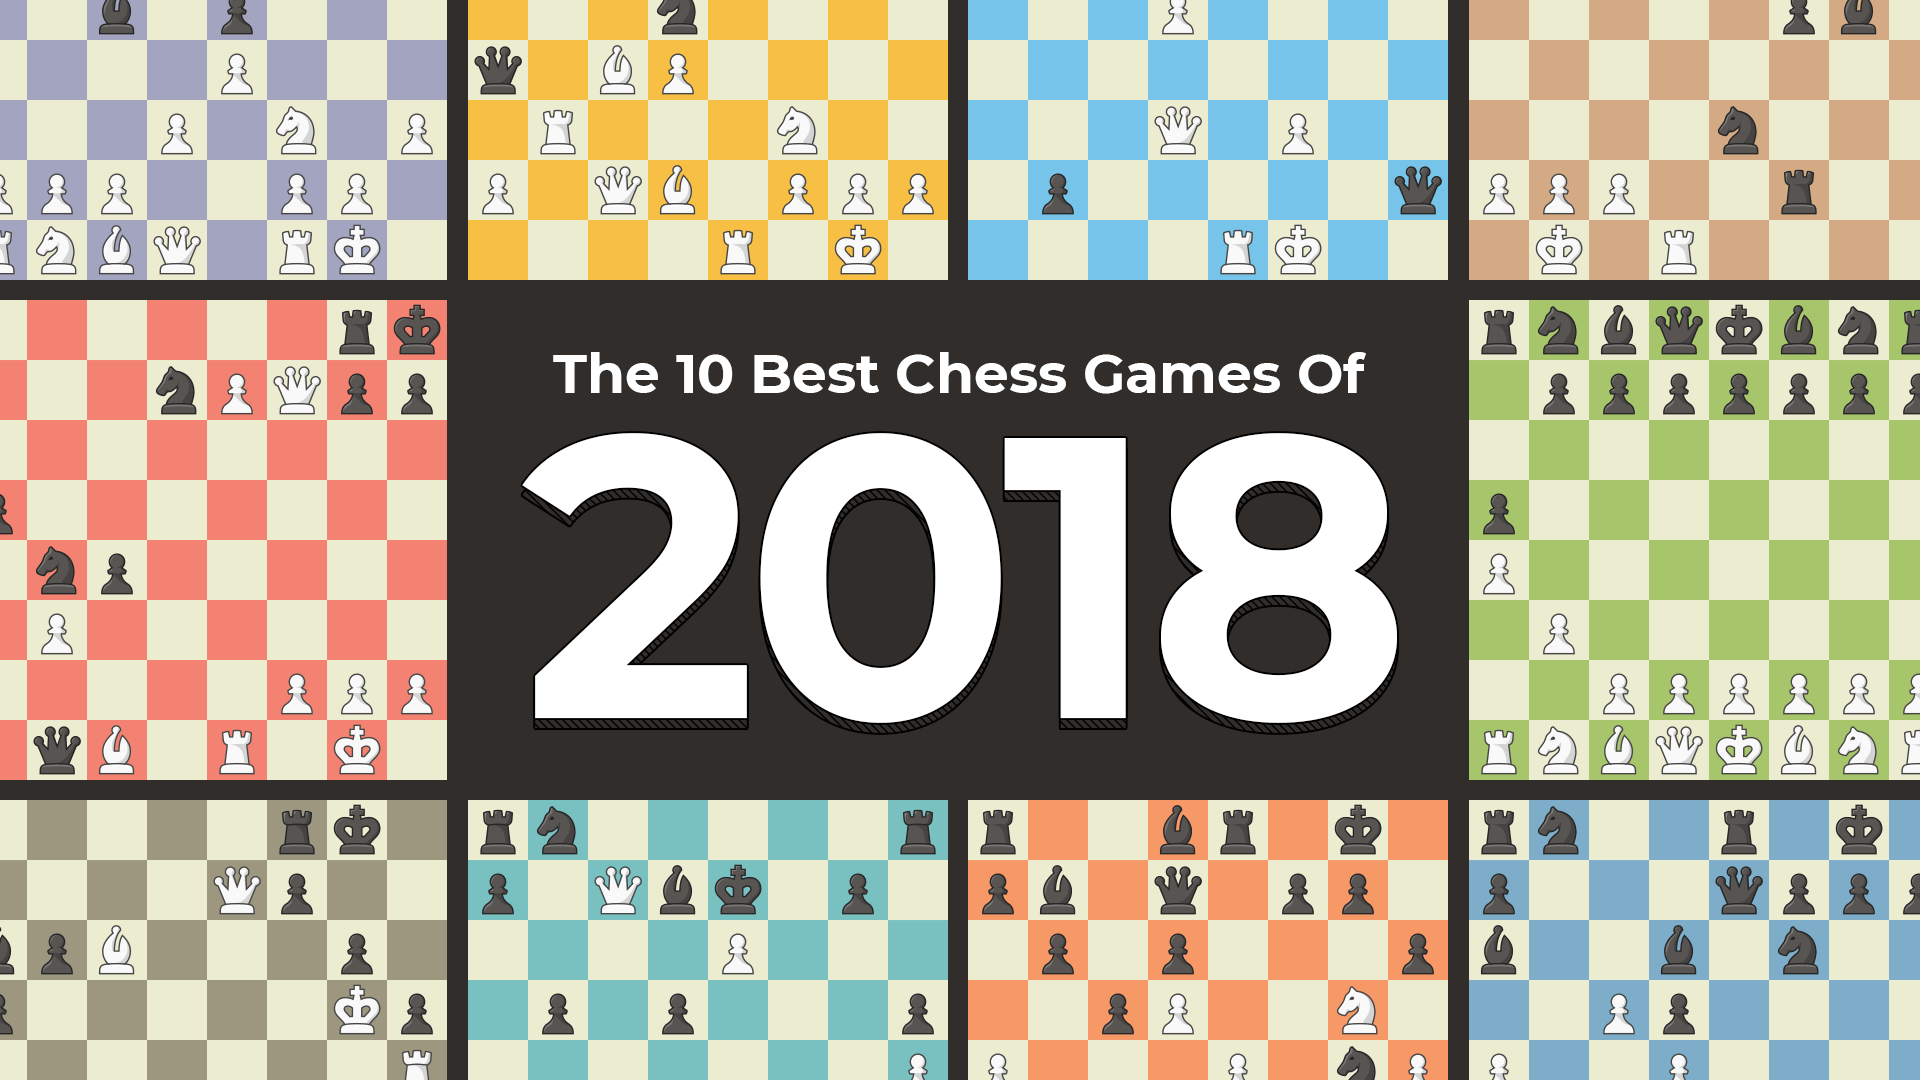 The 10 Best Chess Games Of 2018